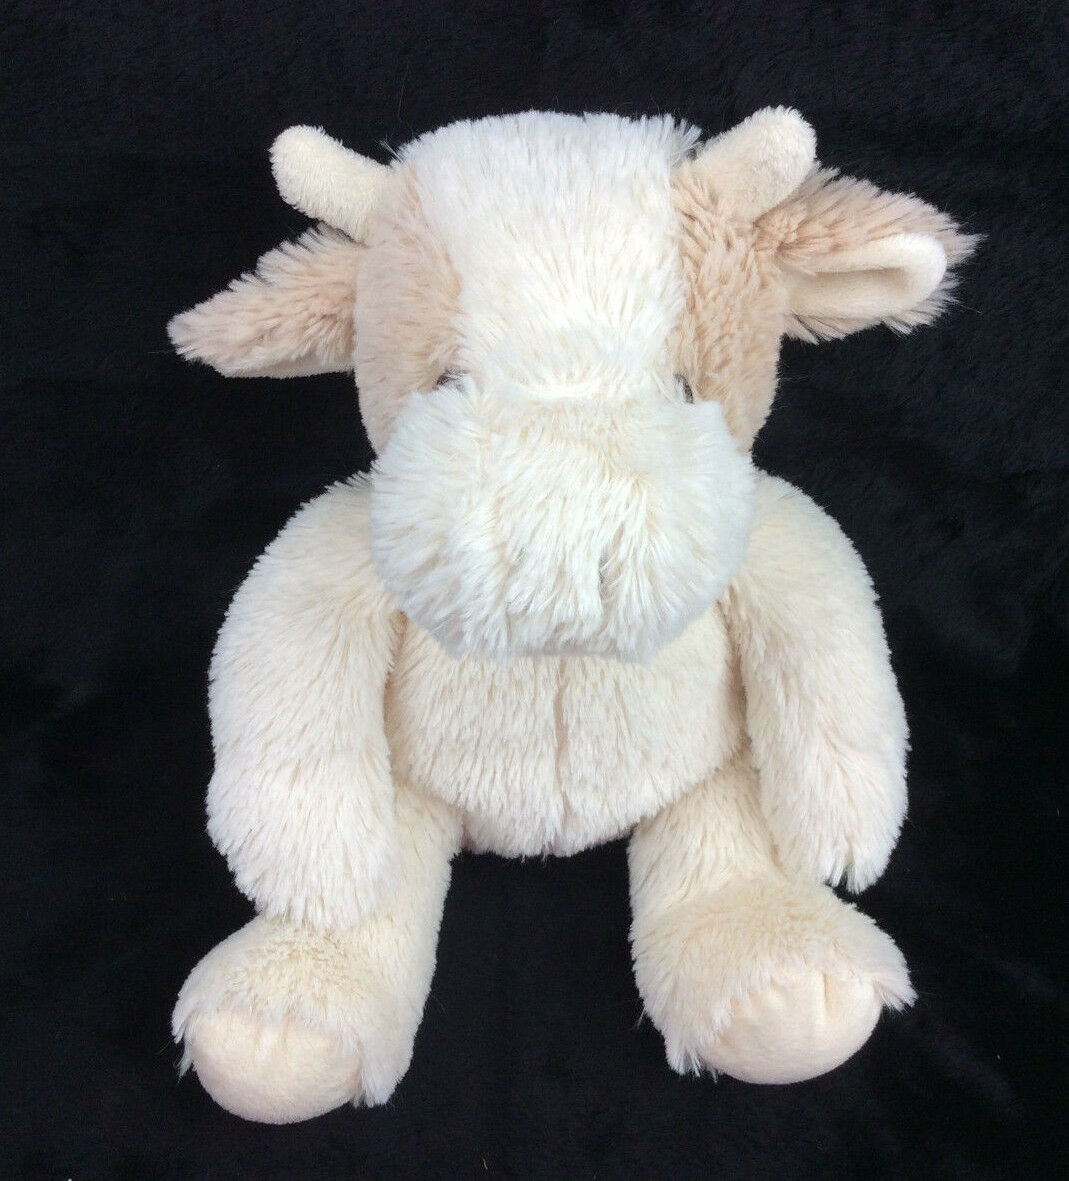 Bean Sprout Cow Baby Soft Toy Brown Off White Plush Stuffed Animal 12